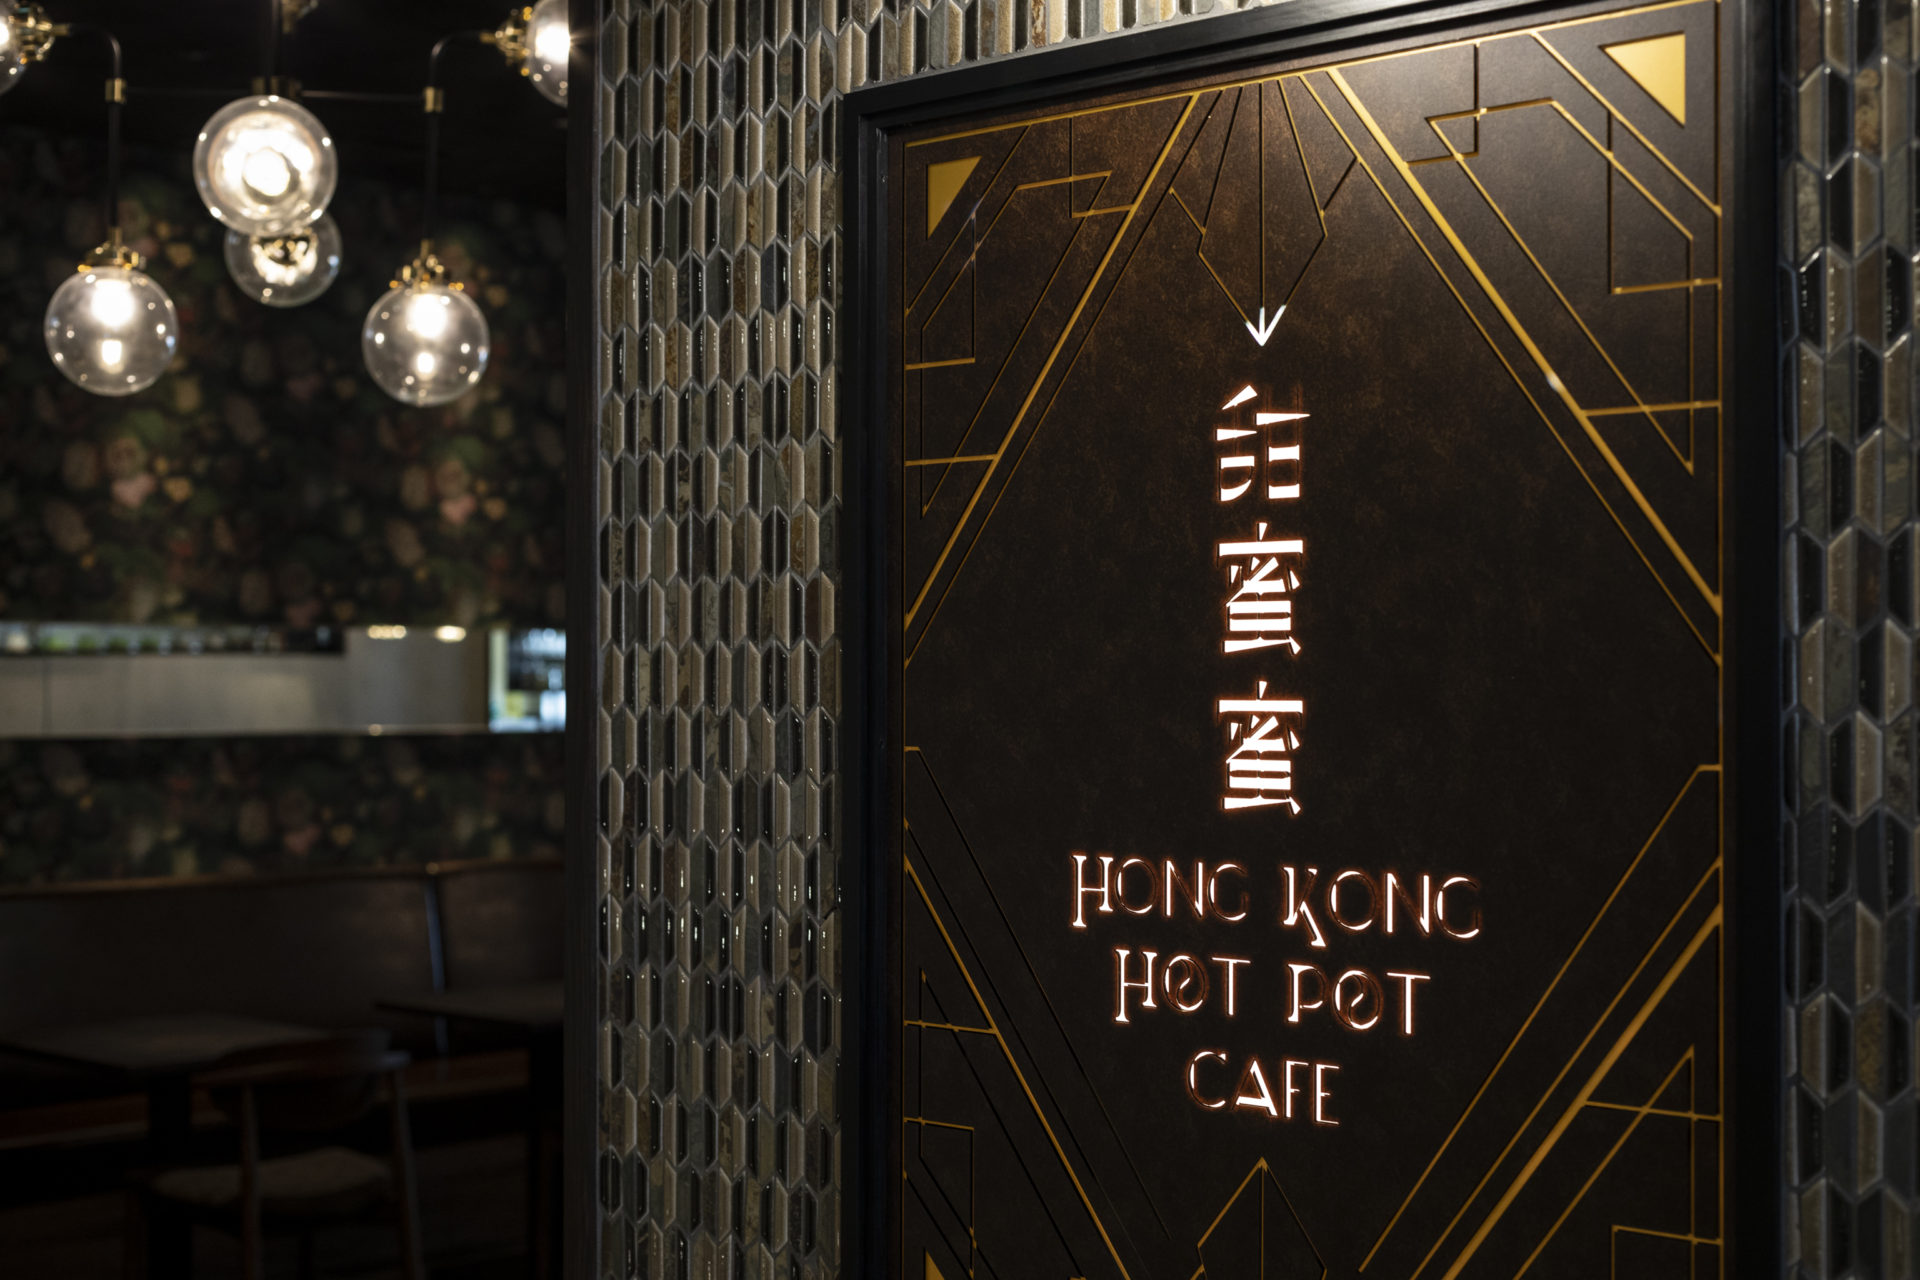 Hong Kong meals for everyday beauty and wellness